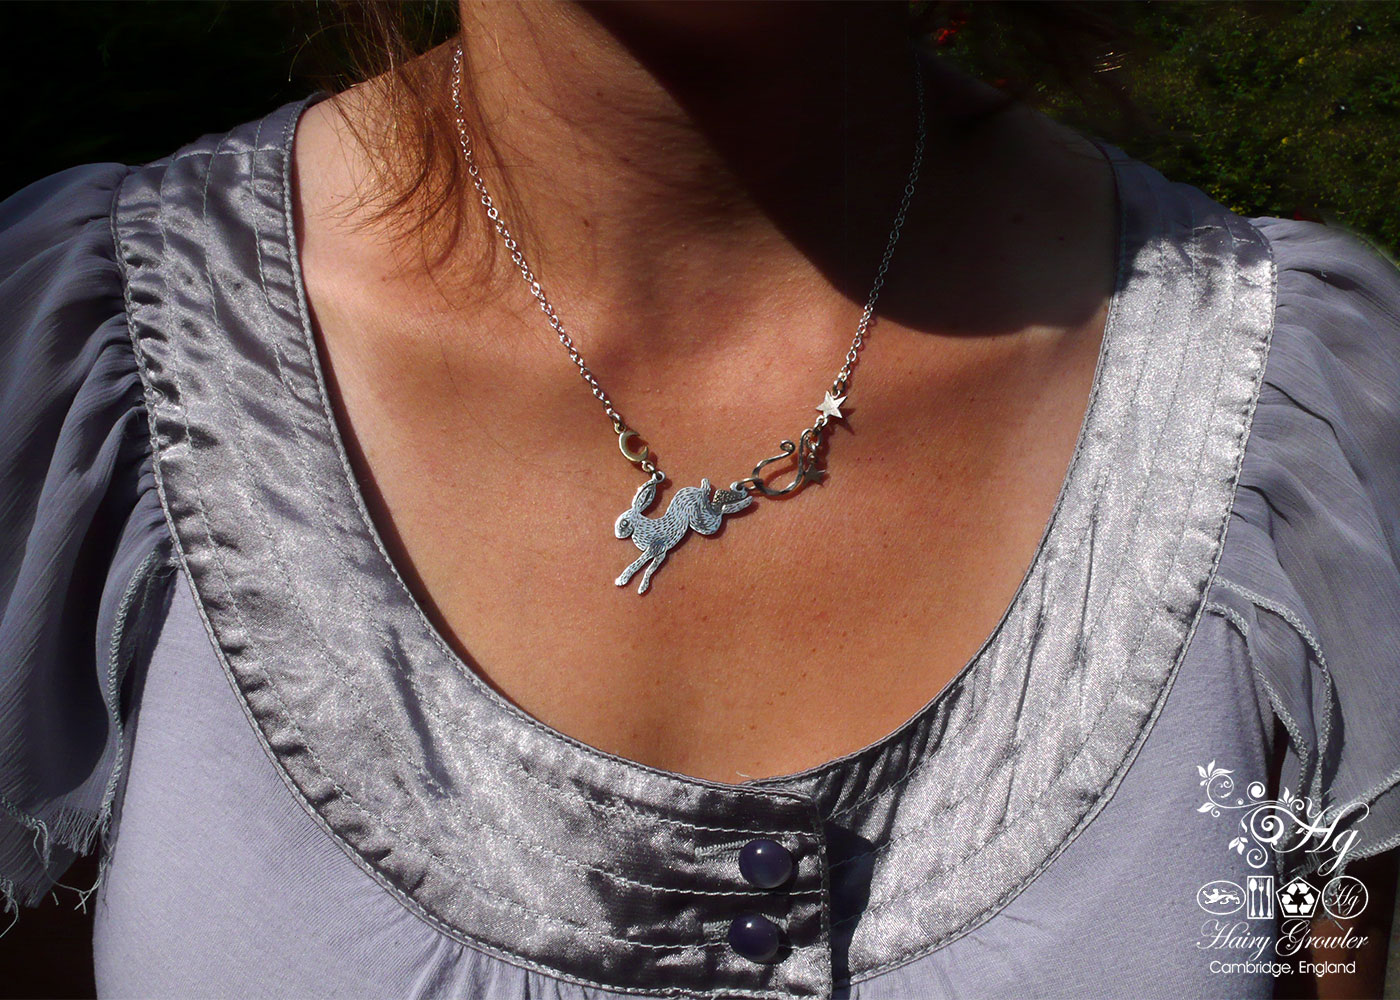 Handmade and upcycled sterling silver moon leaping hare necklace